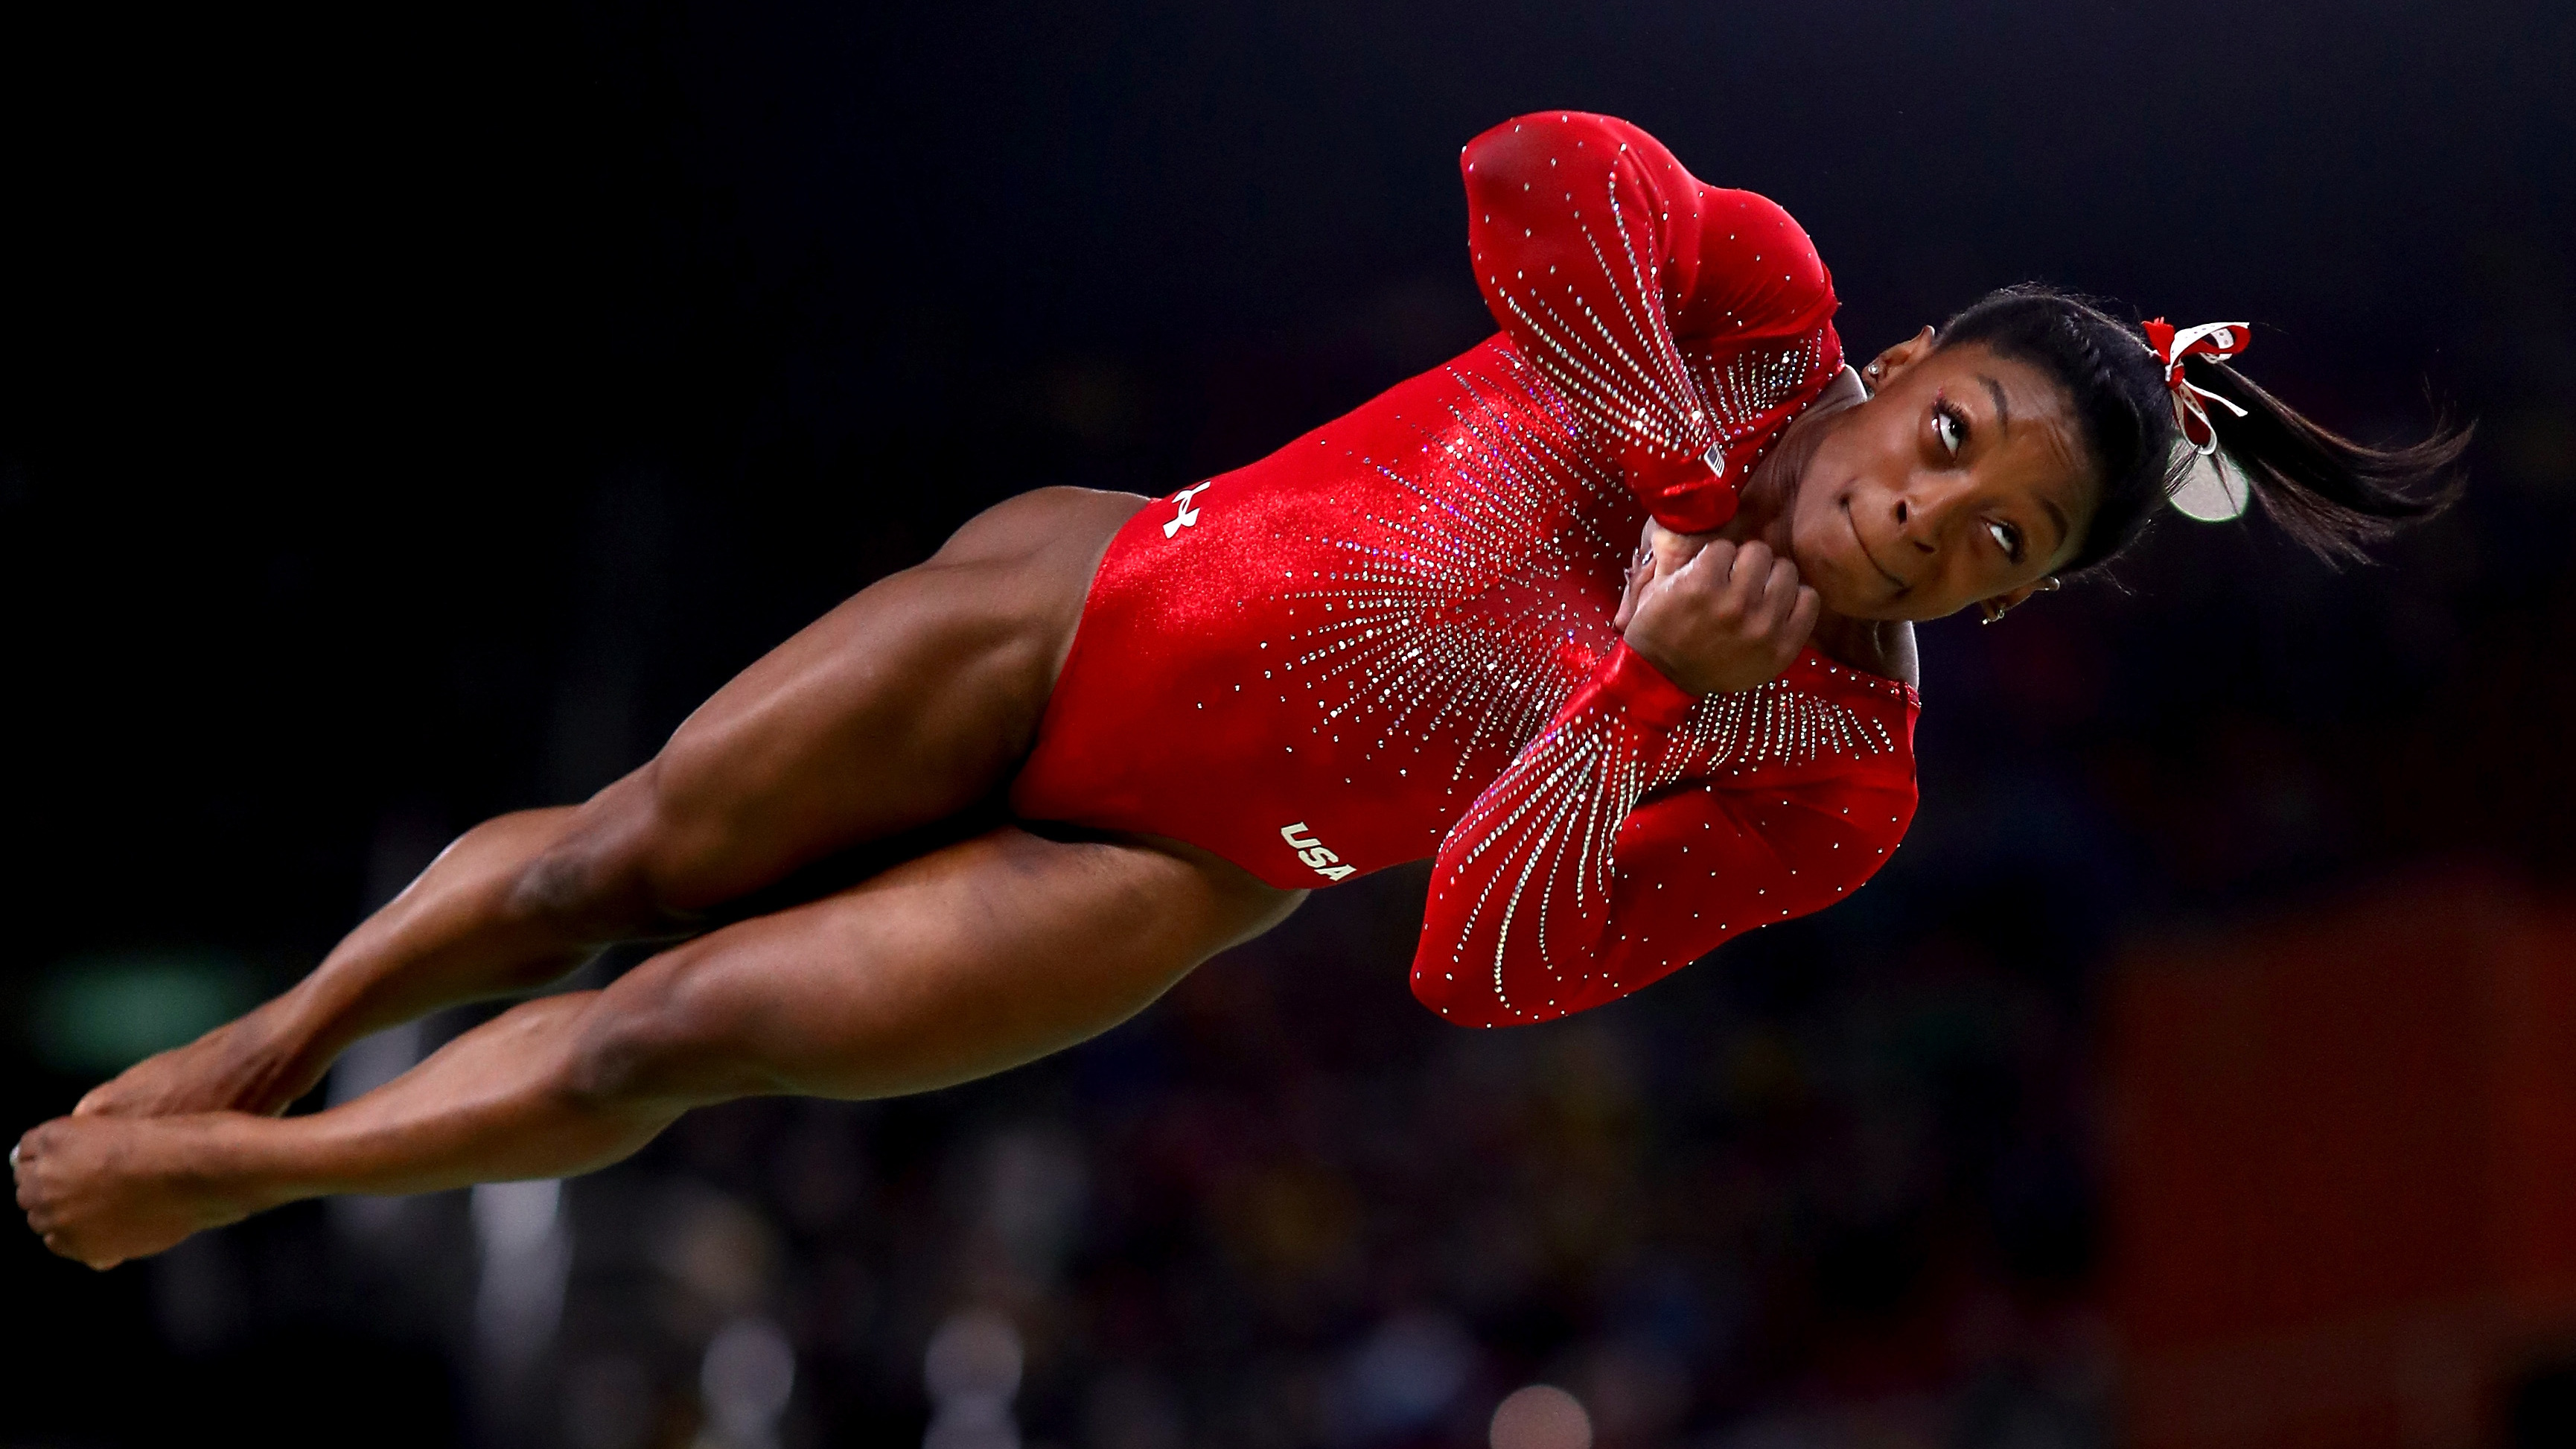 Simone Biles won the women's vault final in the Rio Olympic Arena, setting a new mark for wins in a single Olympics by an American woman. Ryan Pierse/Getty Images